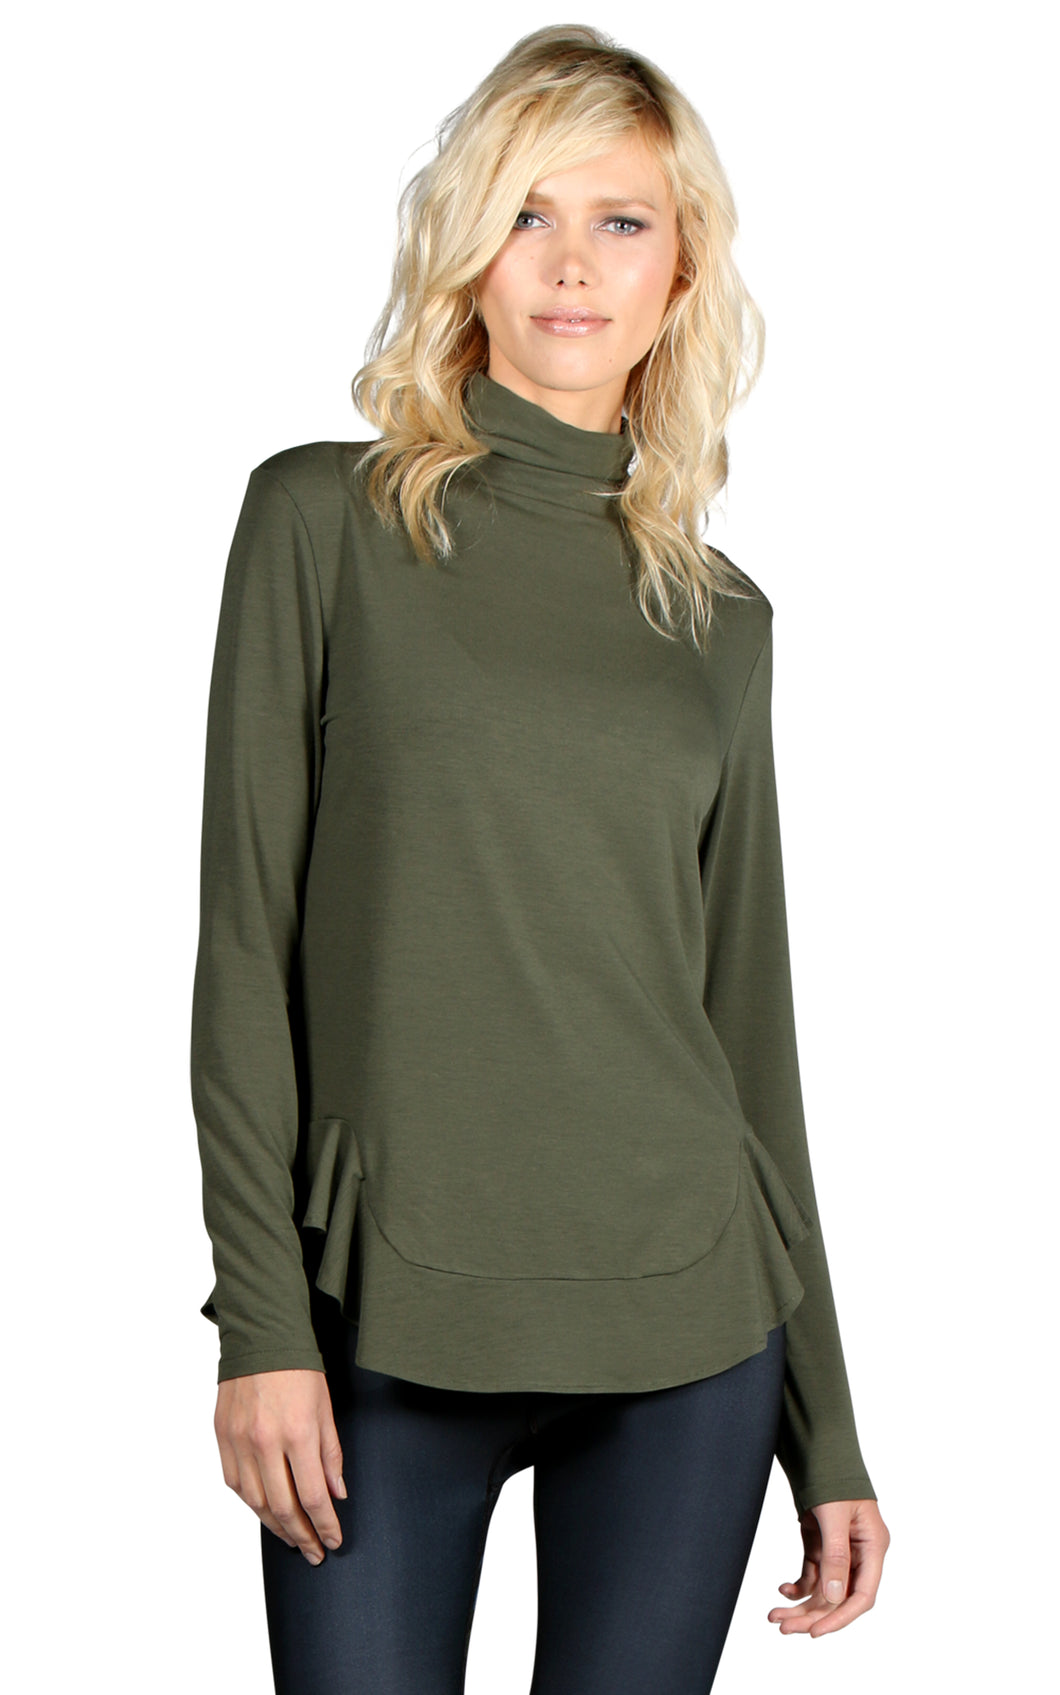 PERFORMANCE WOOL MOCK-NECK LONG SLEEVE